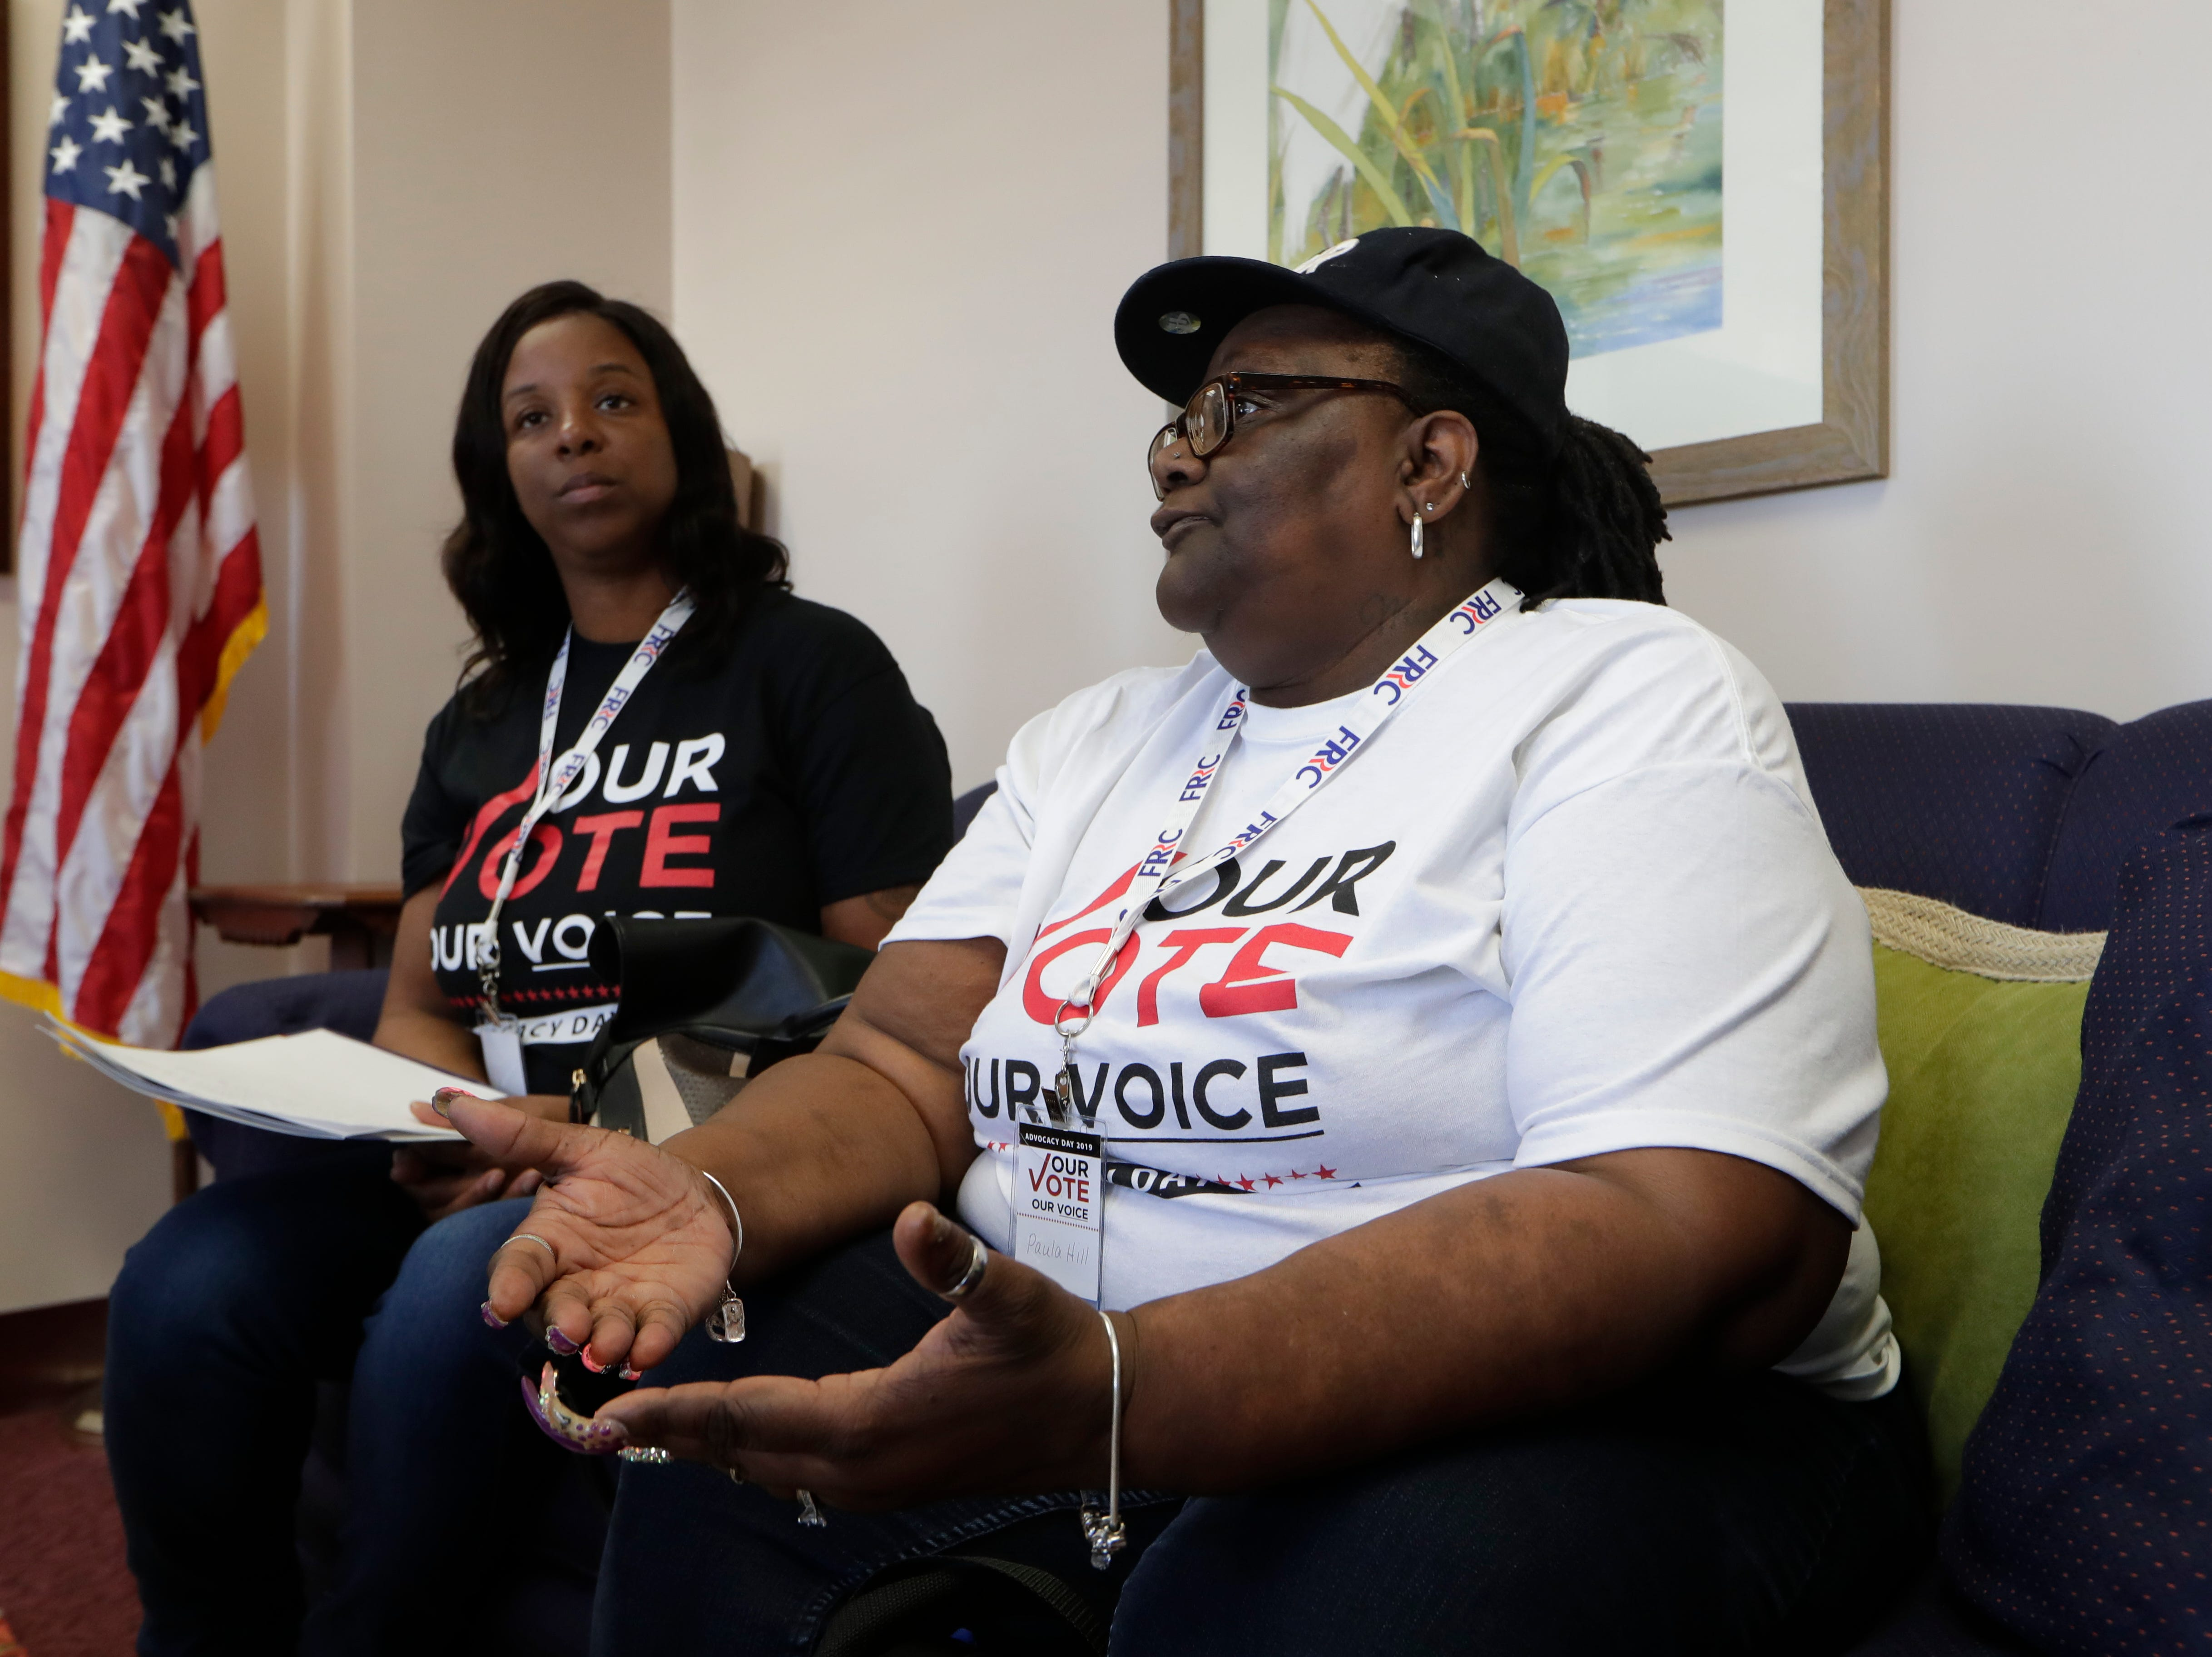 Latisha Berry, left, and Paula Hill, both of Tallahassee, talk with Rep. Loranne Ausley in her office Tuesday as over 500 returning citizens met with representatives at the Capitol during an Amendment 4 returning citizens advocacy day organized by the Florida Rights Restoration Coalition.